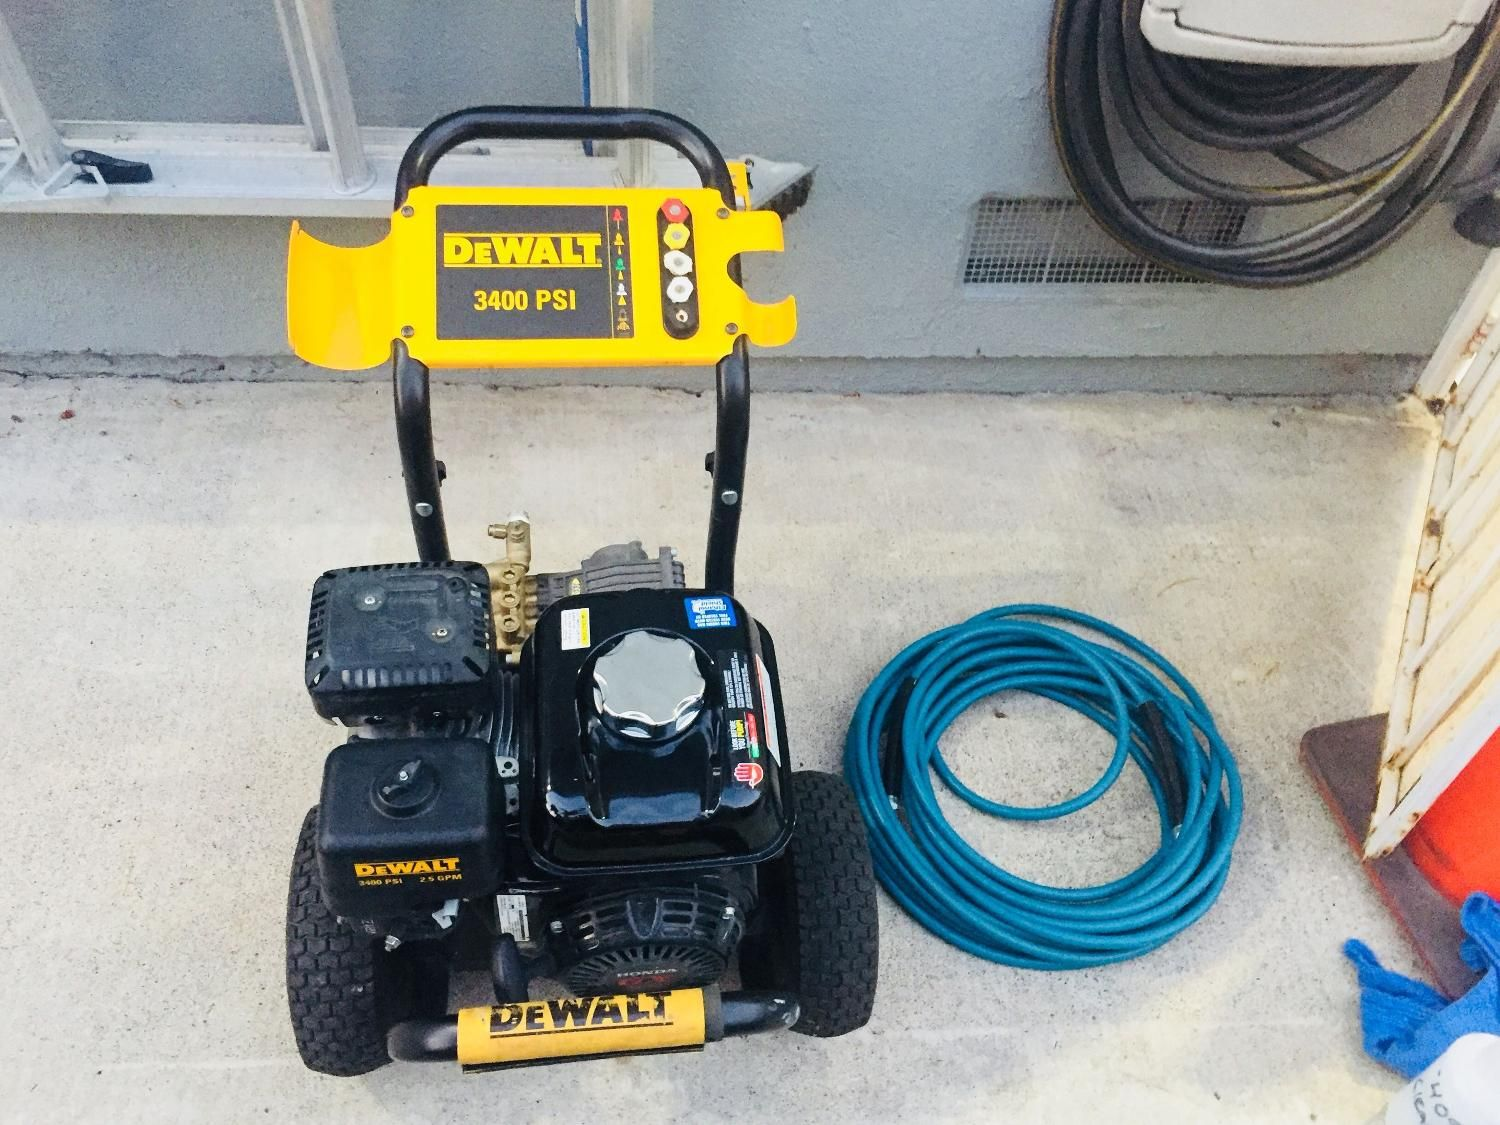 Pin On Psi Dewalt 3400 Pressure Washer With Gun And Hose 340